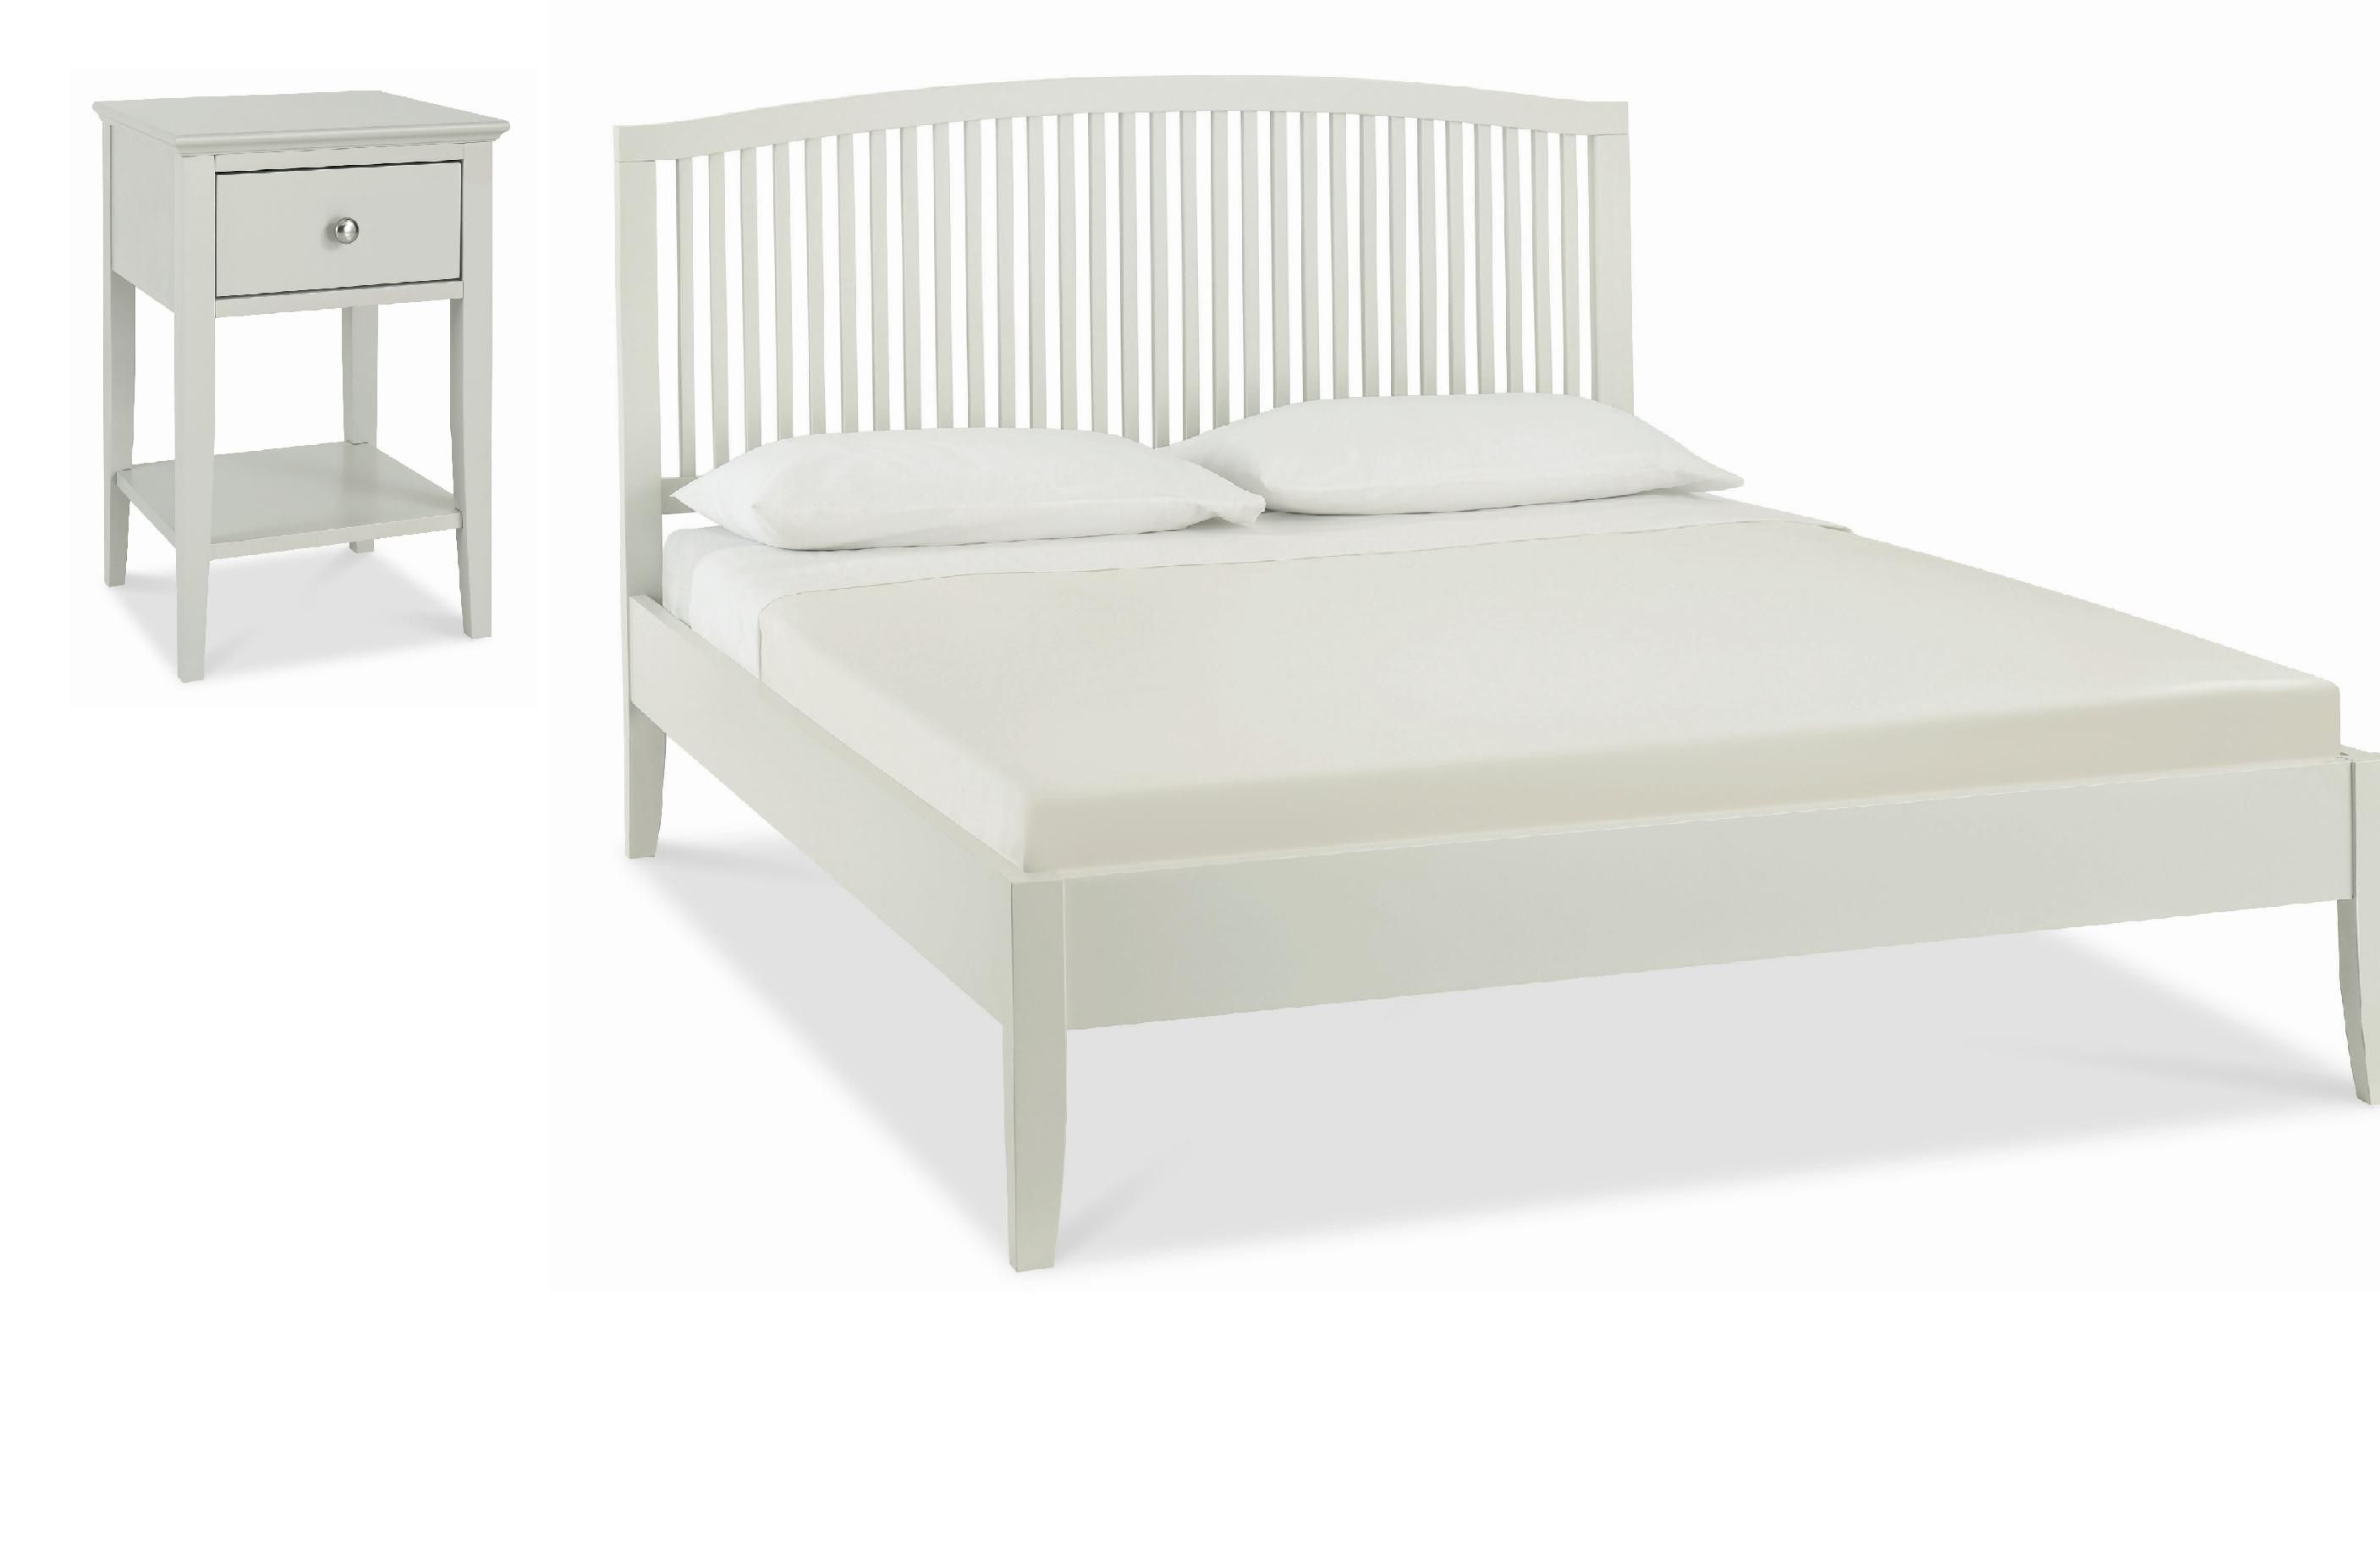 Cotton bedroom furniture range